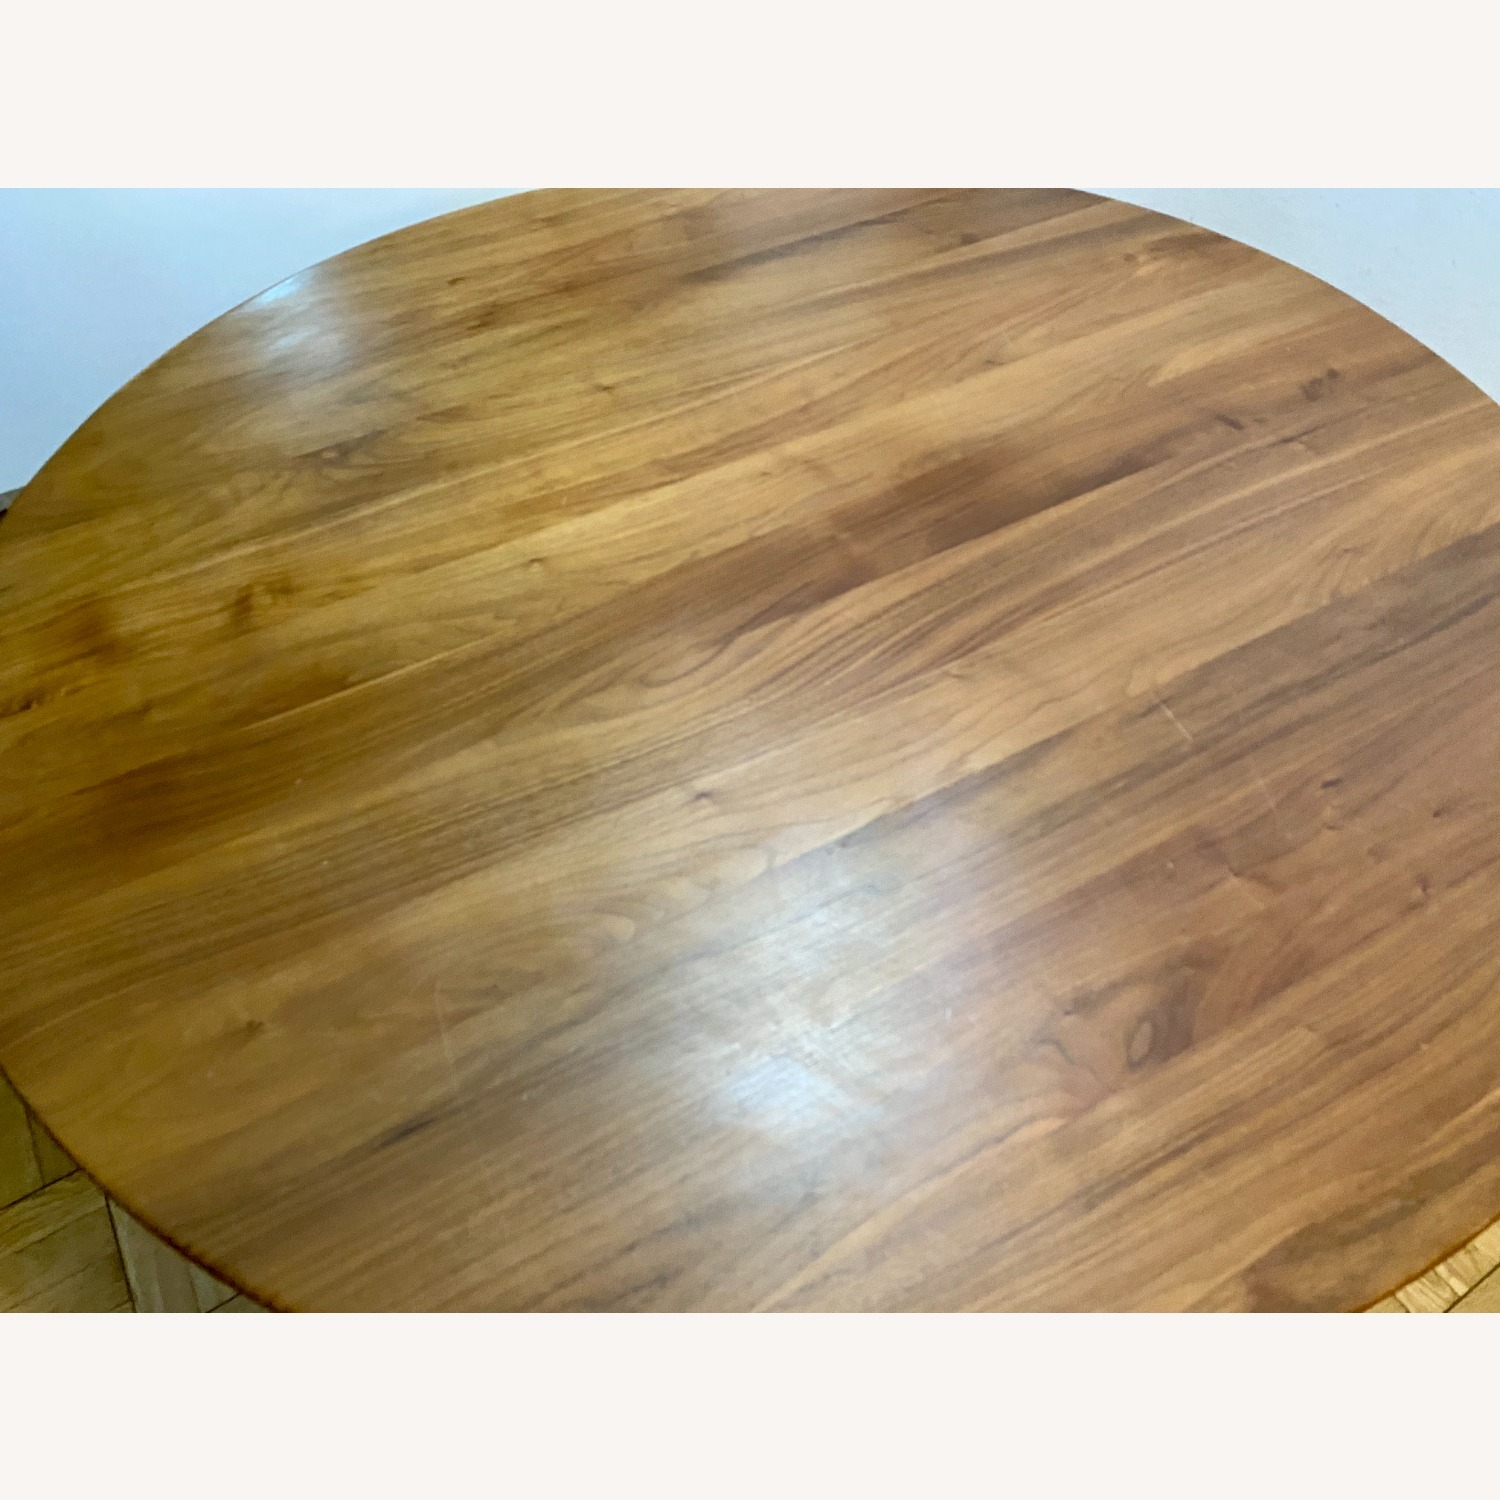 Rejuvenation Wood Modern Round Dining Table - image-6